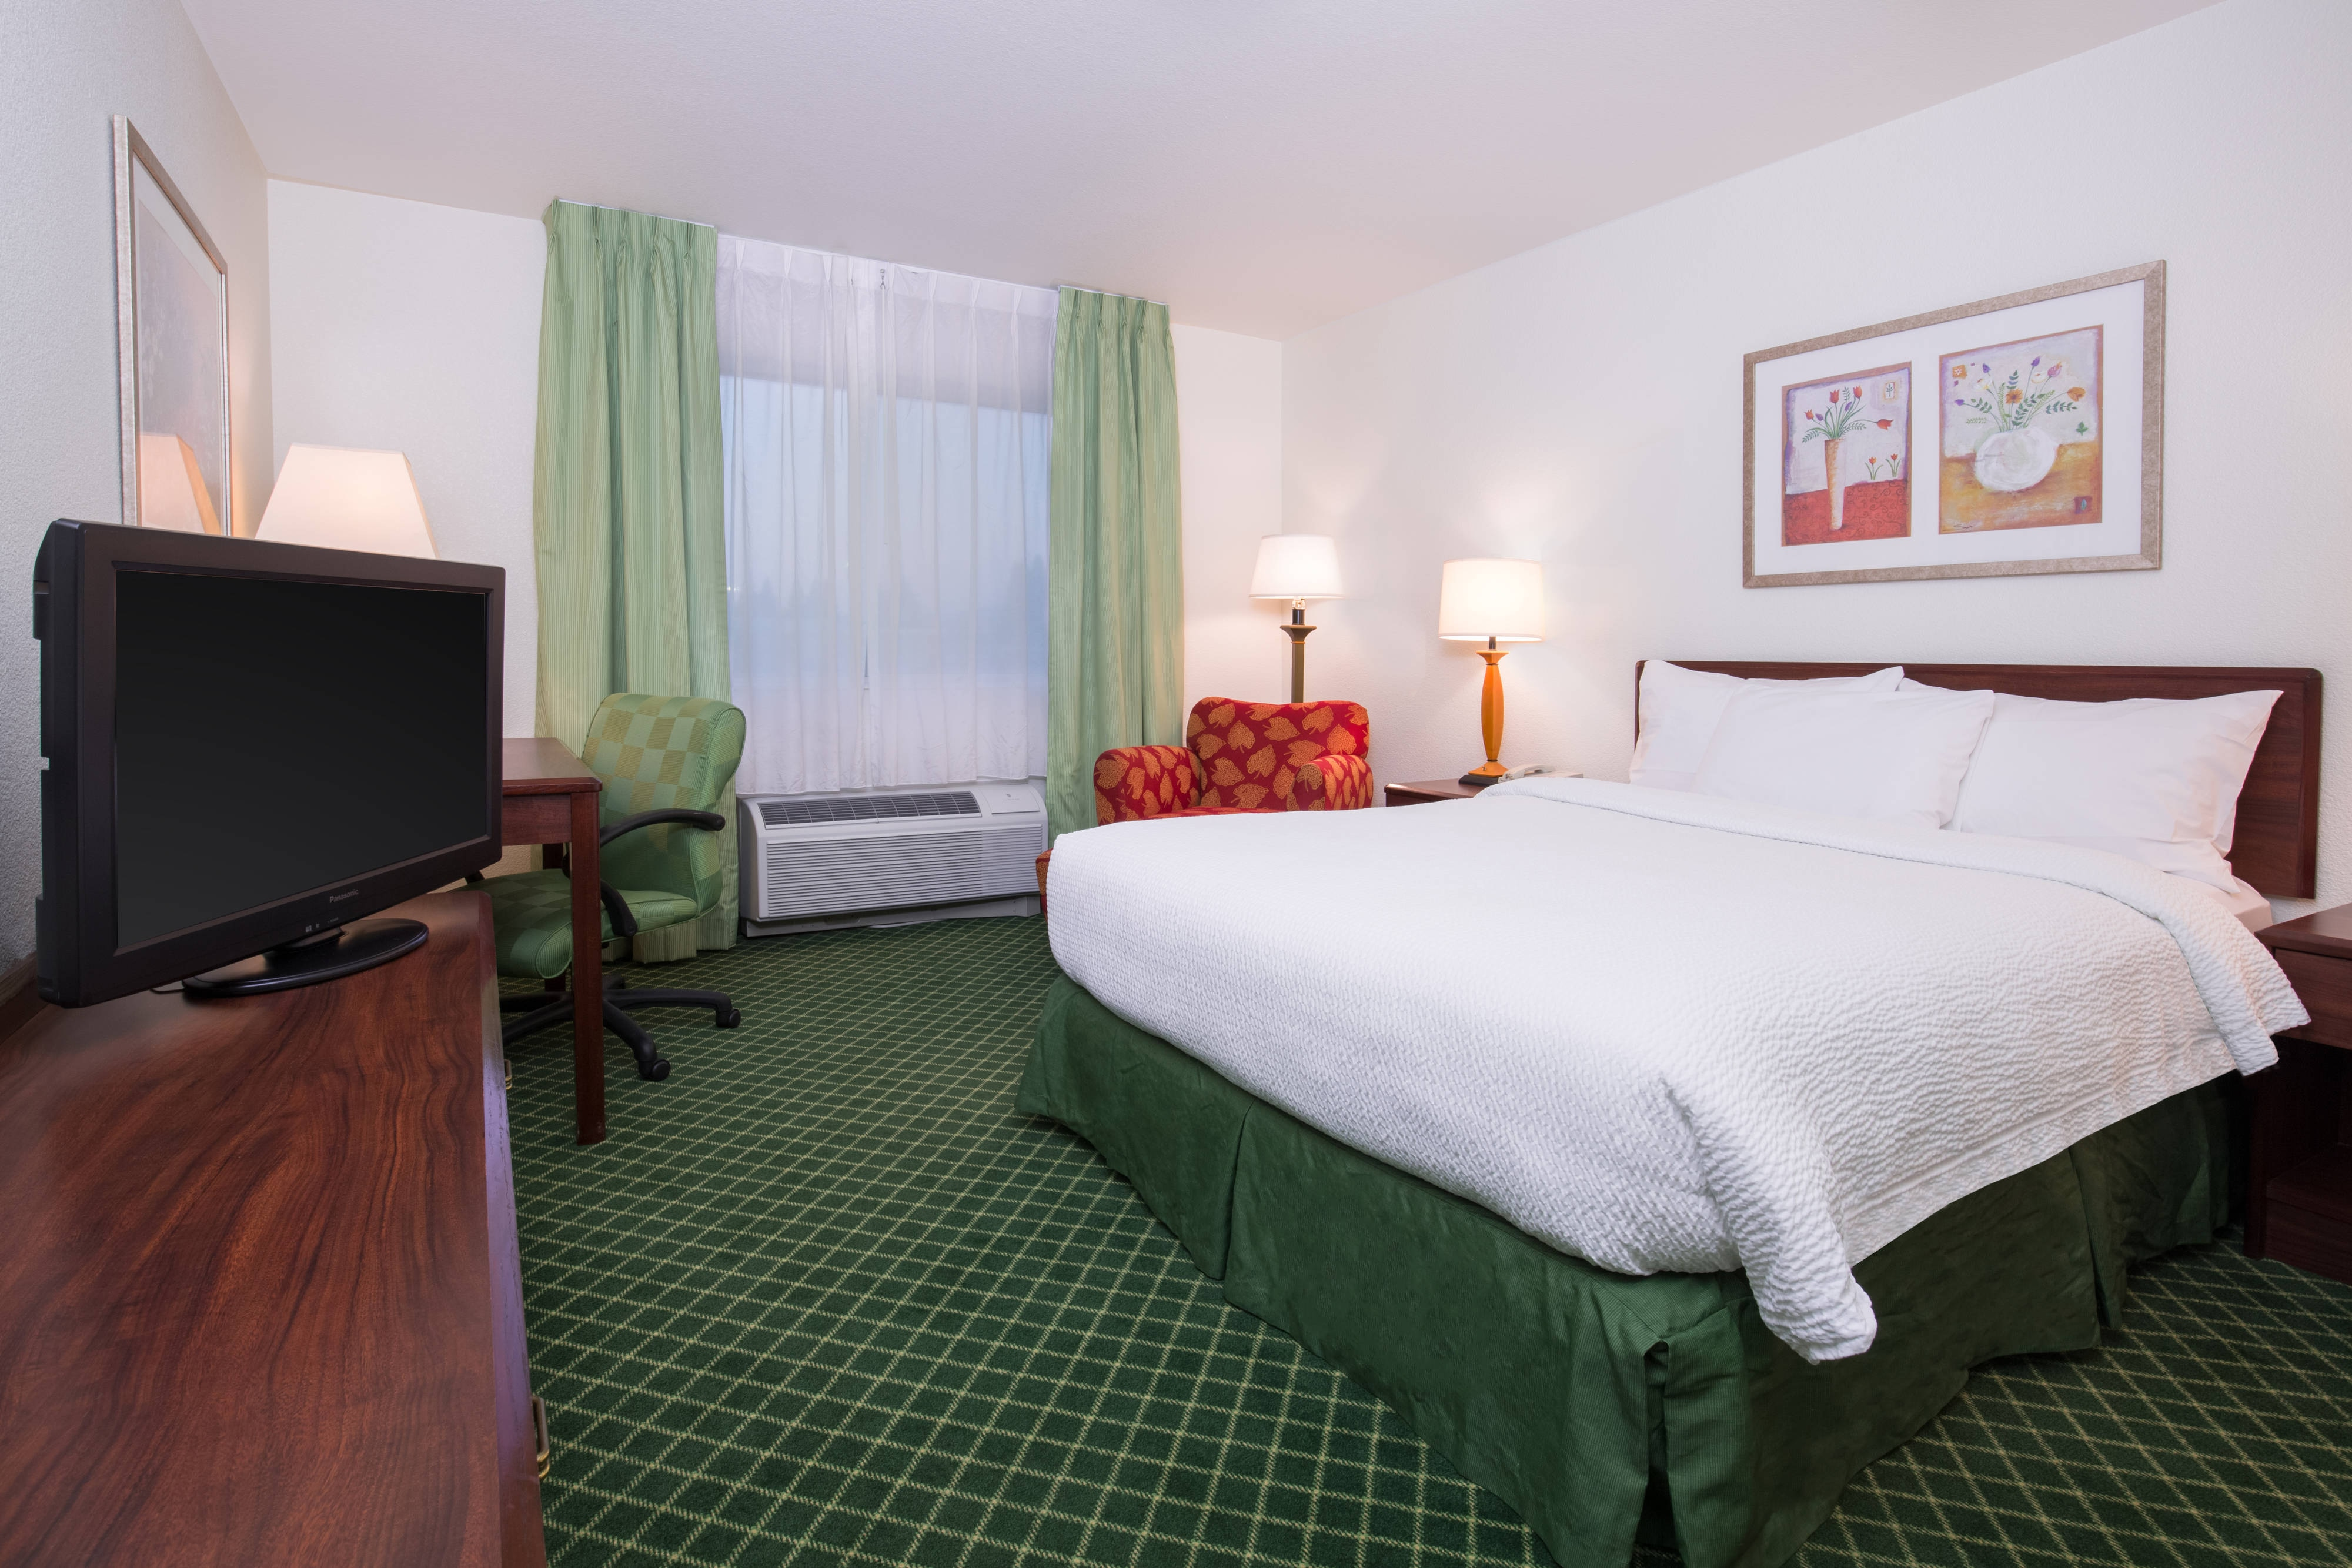 Hotel Rooms In Vacaville Ca